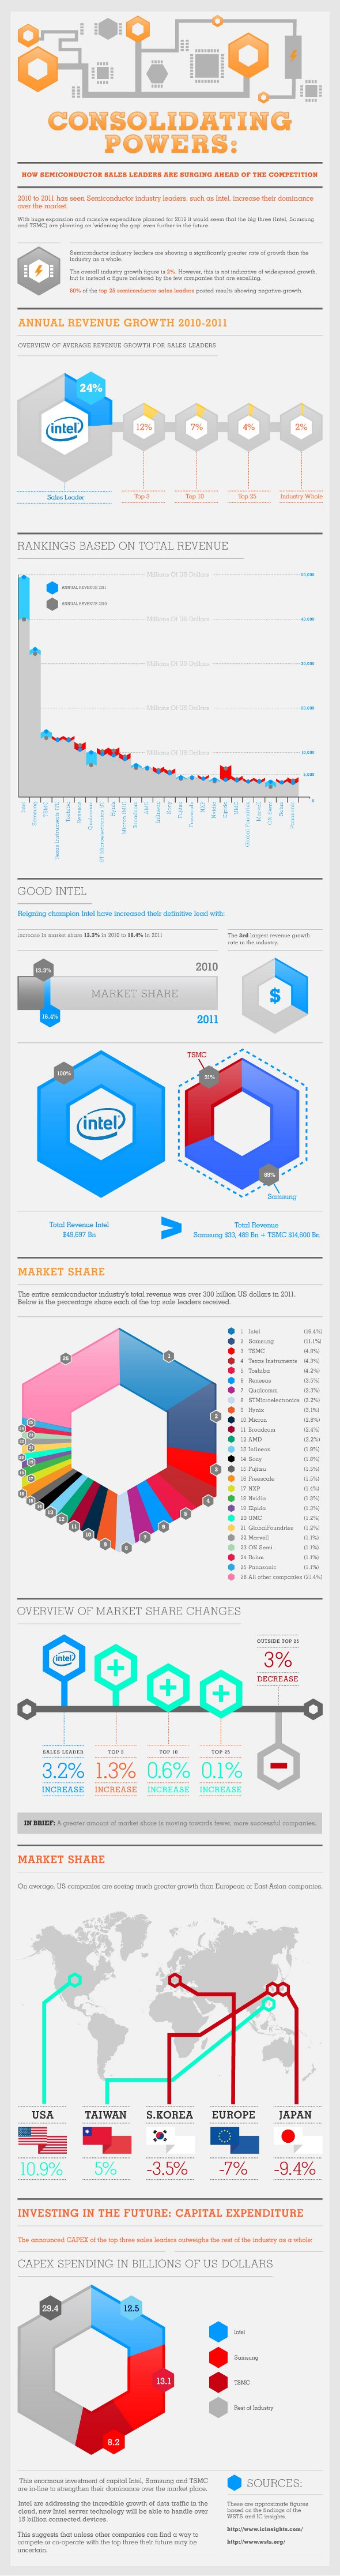 a-look-at-intel-samsung-tsmc-and-the-semiconductor-industry_504a1dd73db30